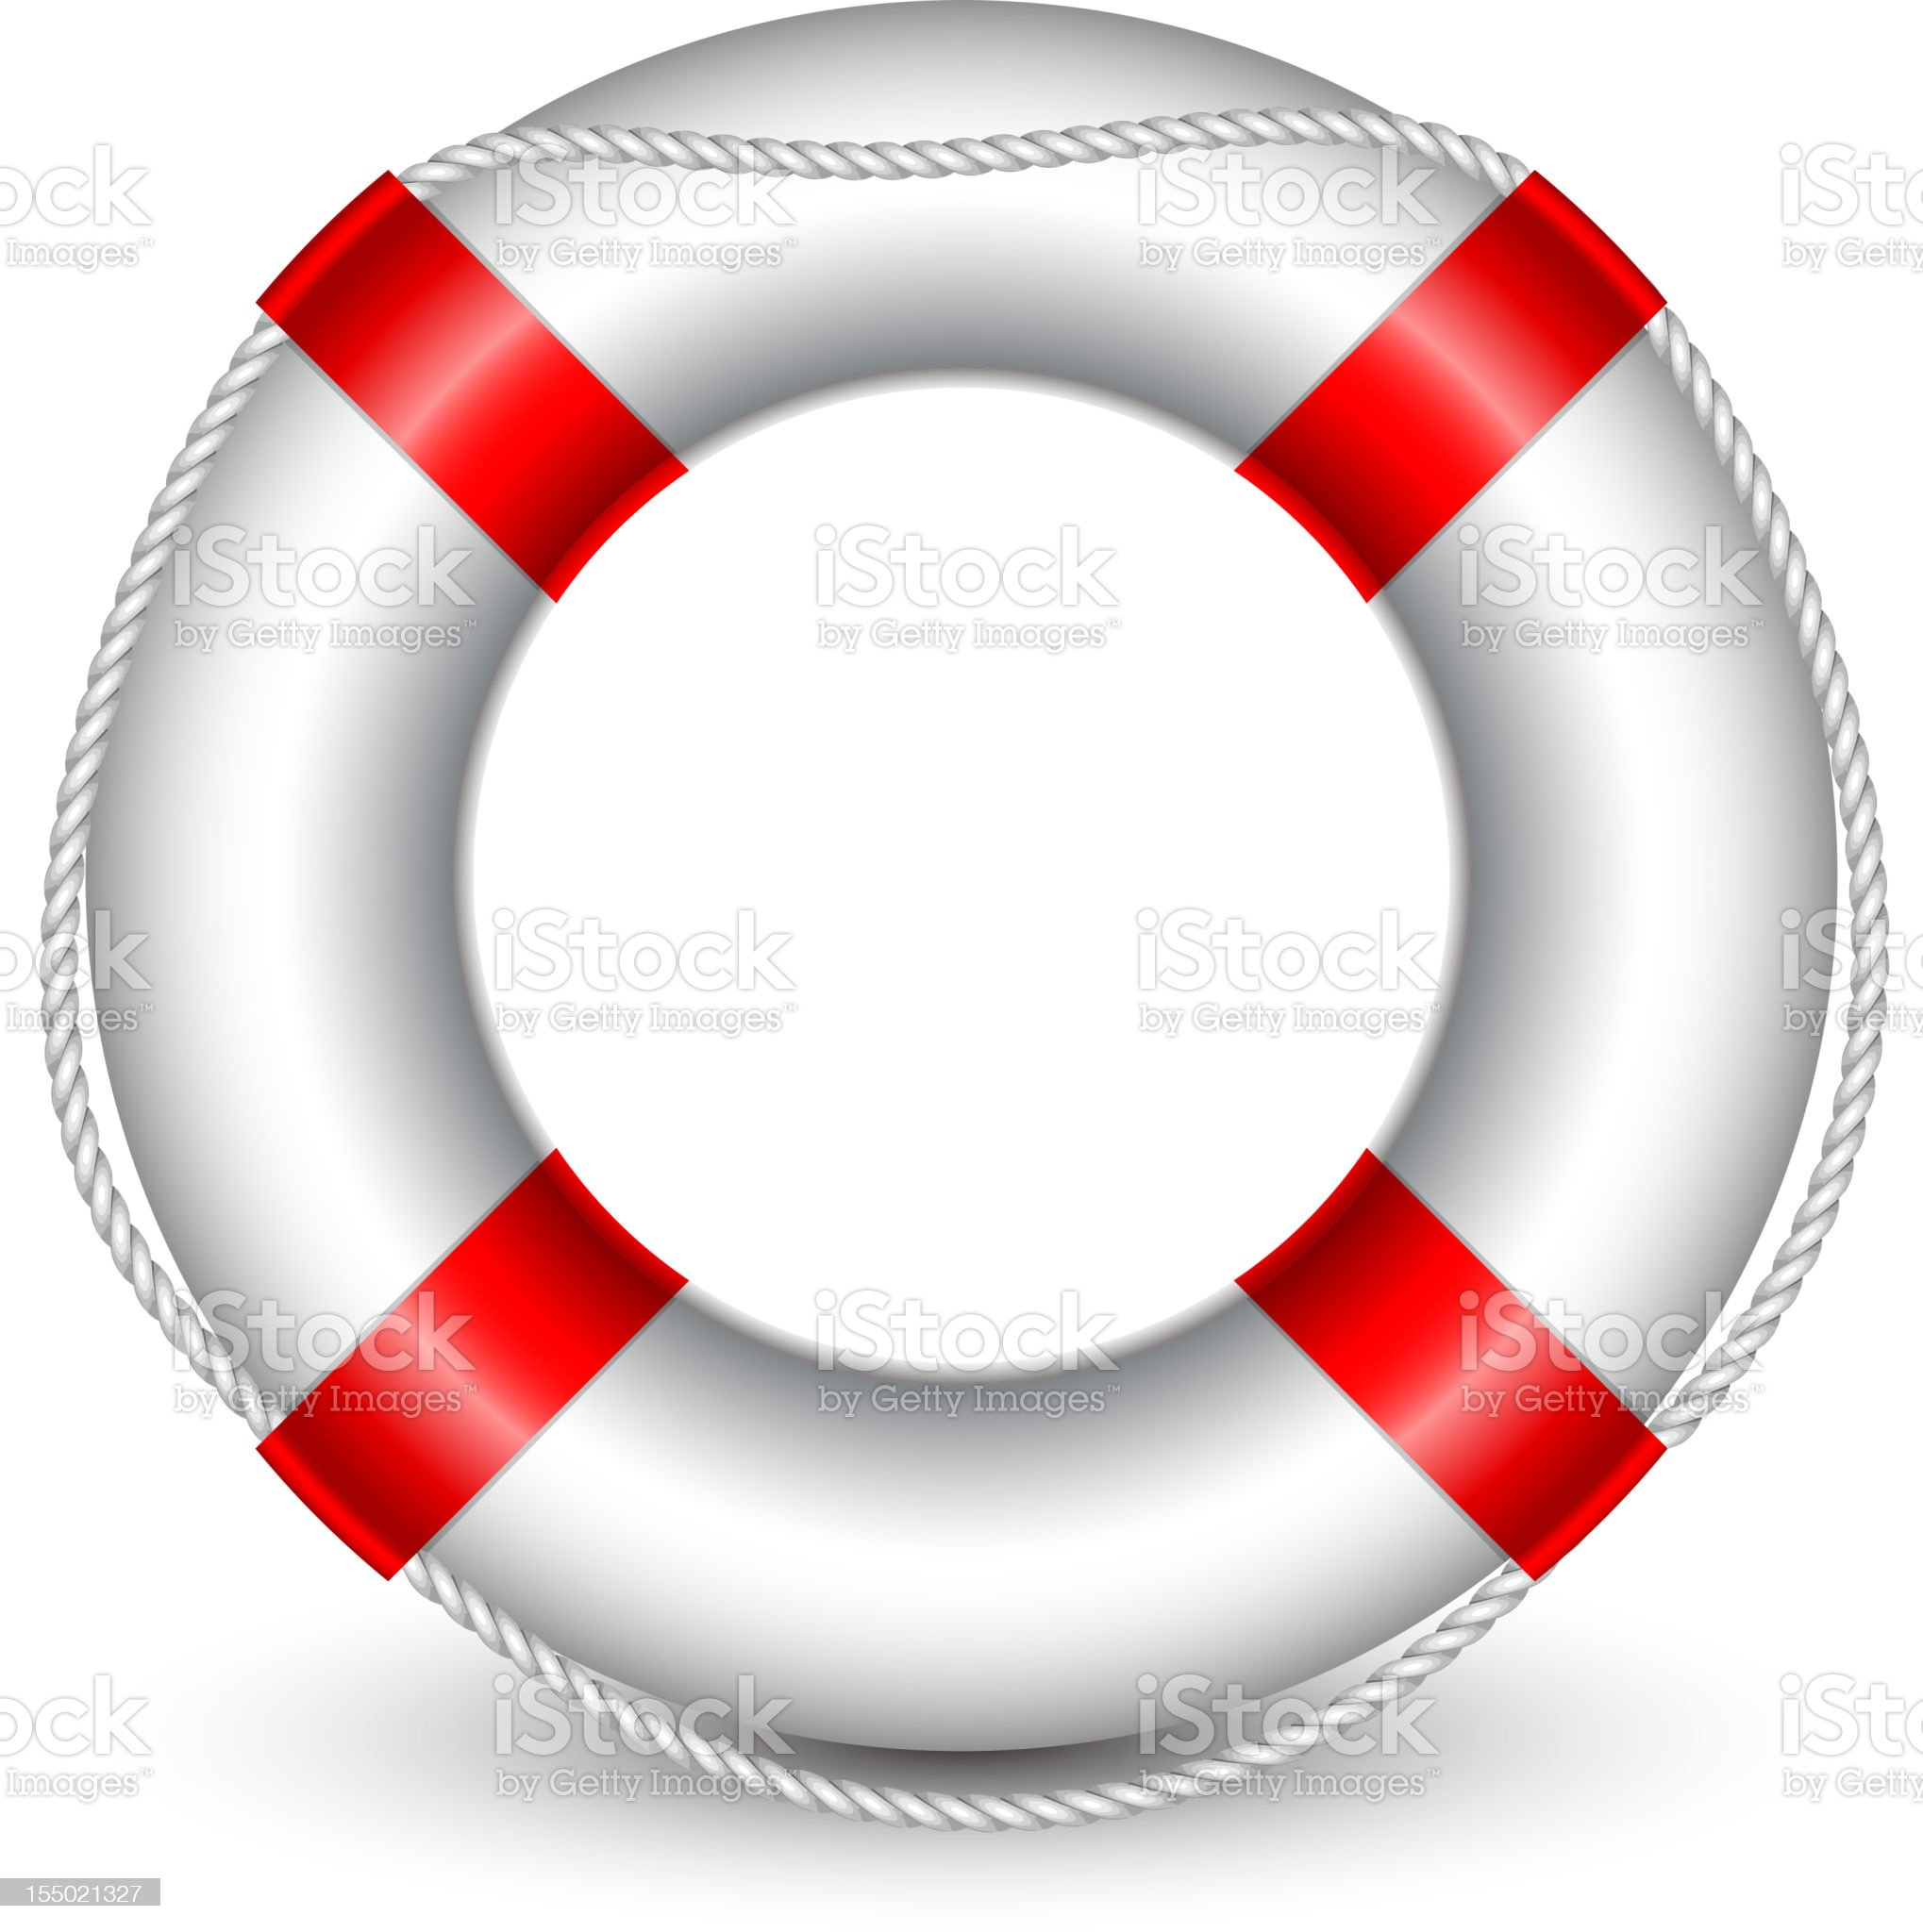 A red and white life buoy on a white background royalty-free stock vector art